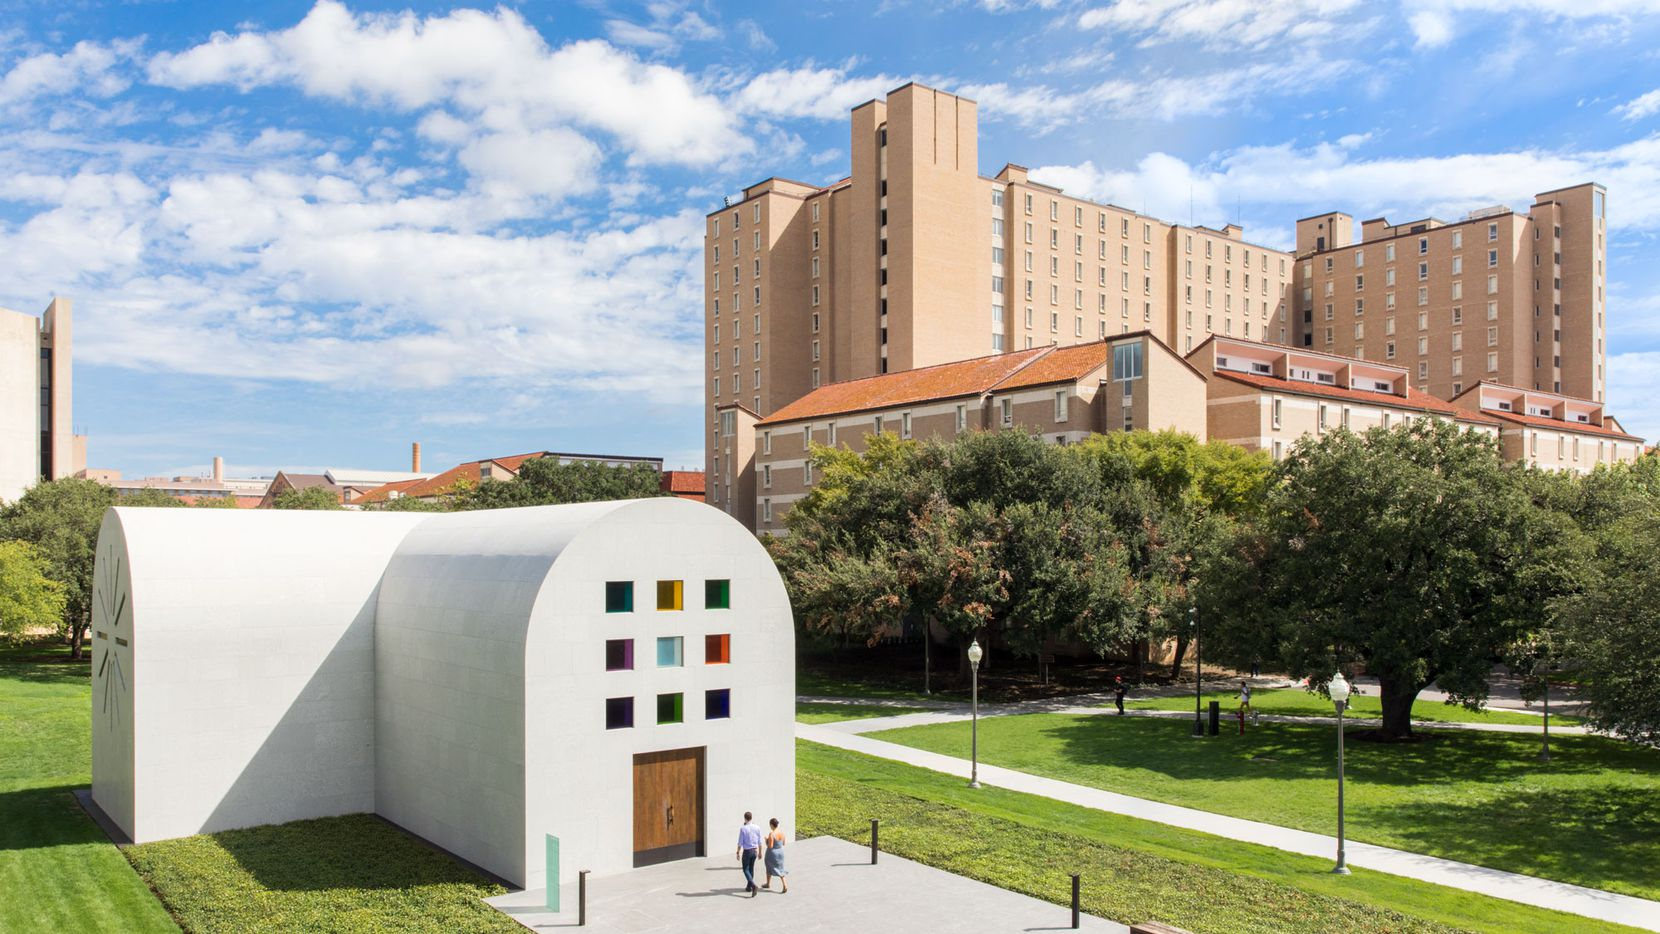 """Artist Ellsworth Kelly's """"Austin"""" is a striking addition to the University of Texas campus."""